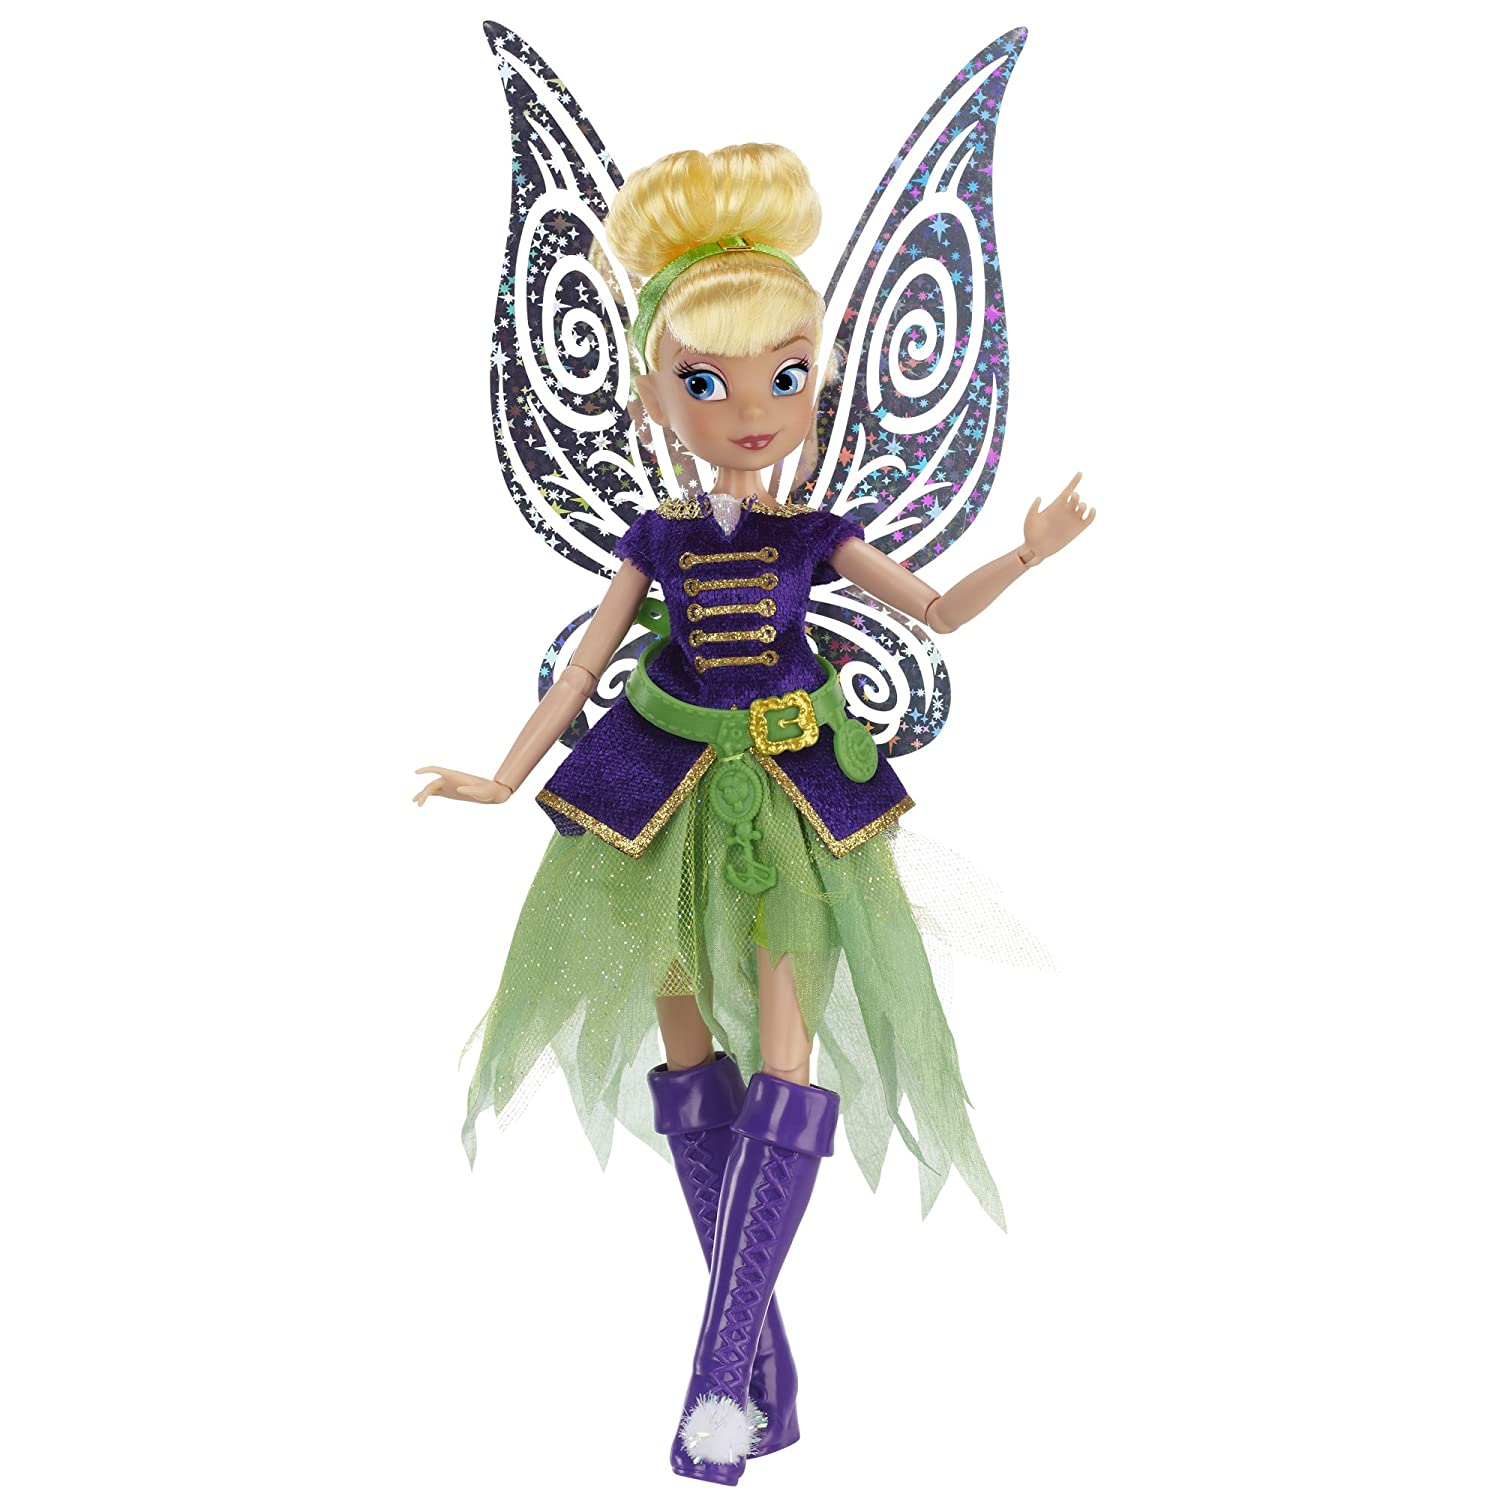 Disney Fairies Tink Wave 9 Deluxe Fashion Doll